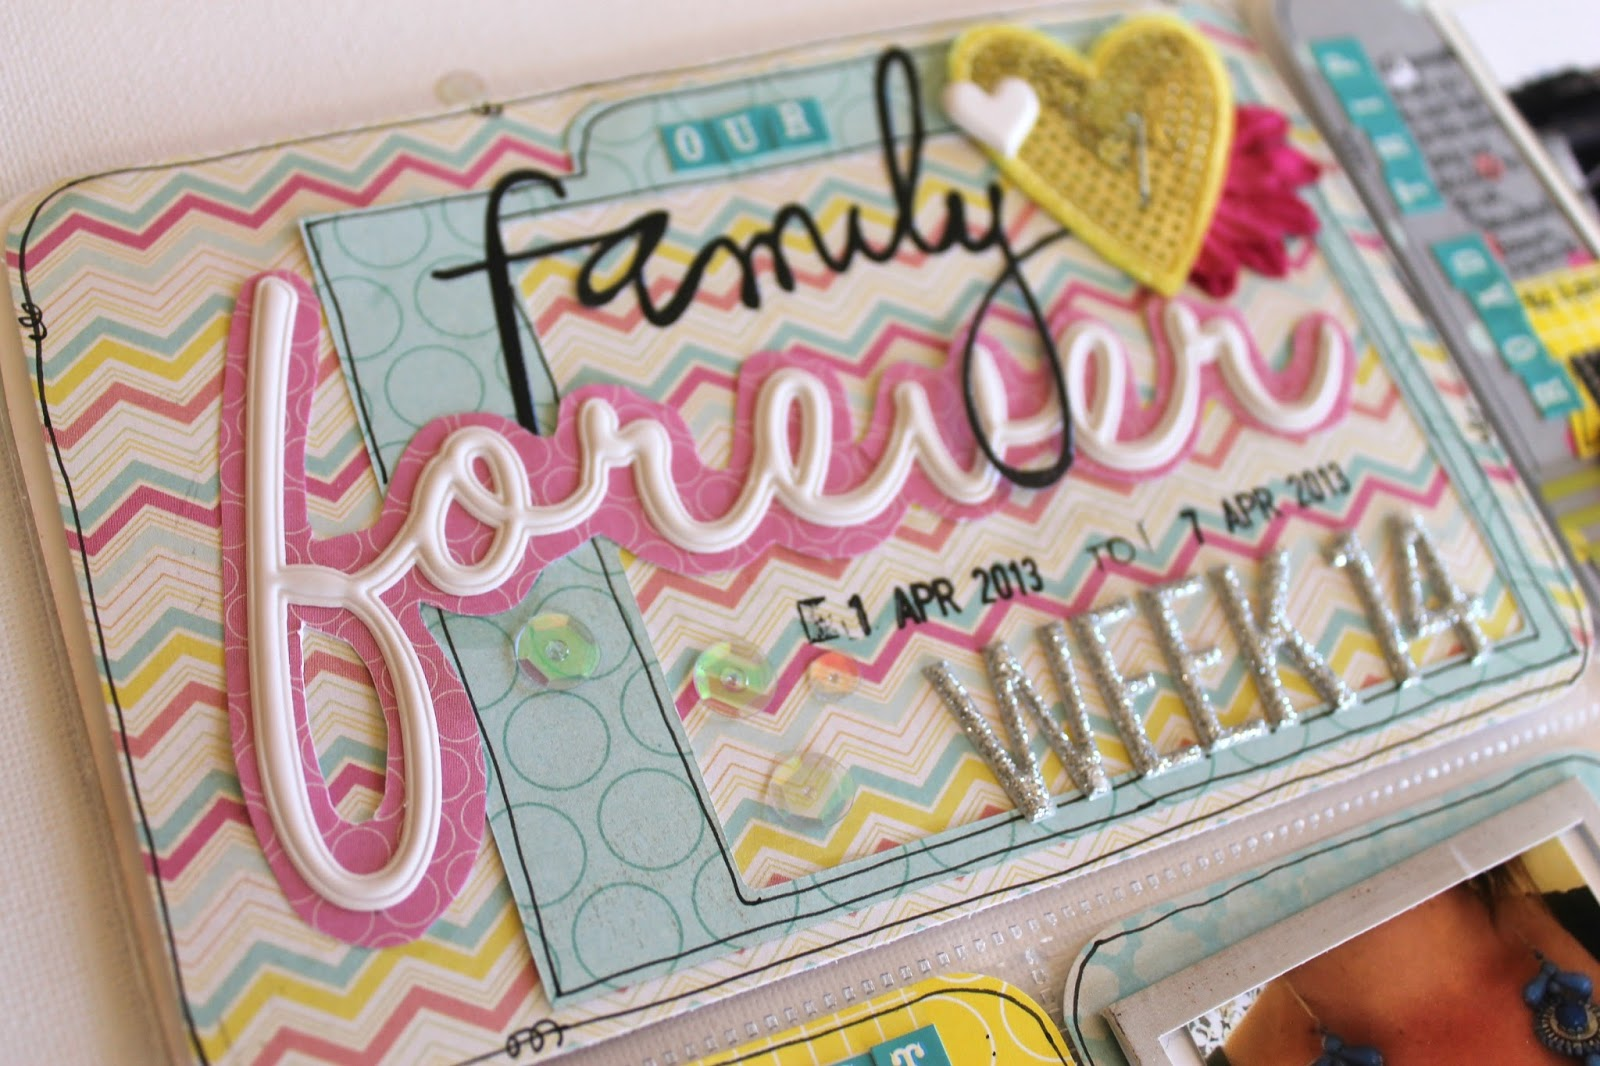 How to scrapbook with project life - So Along With This Awesome Challenge We Were Set As A Team It Is Now Your Chance To Play Along And Show Us How You Layer In Your Project Life Spreads